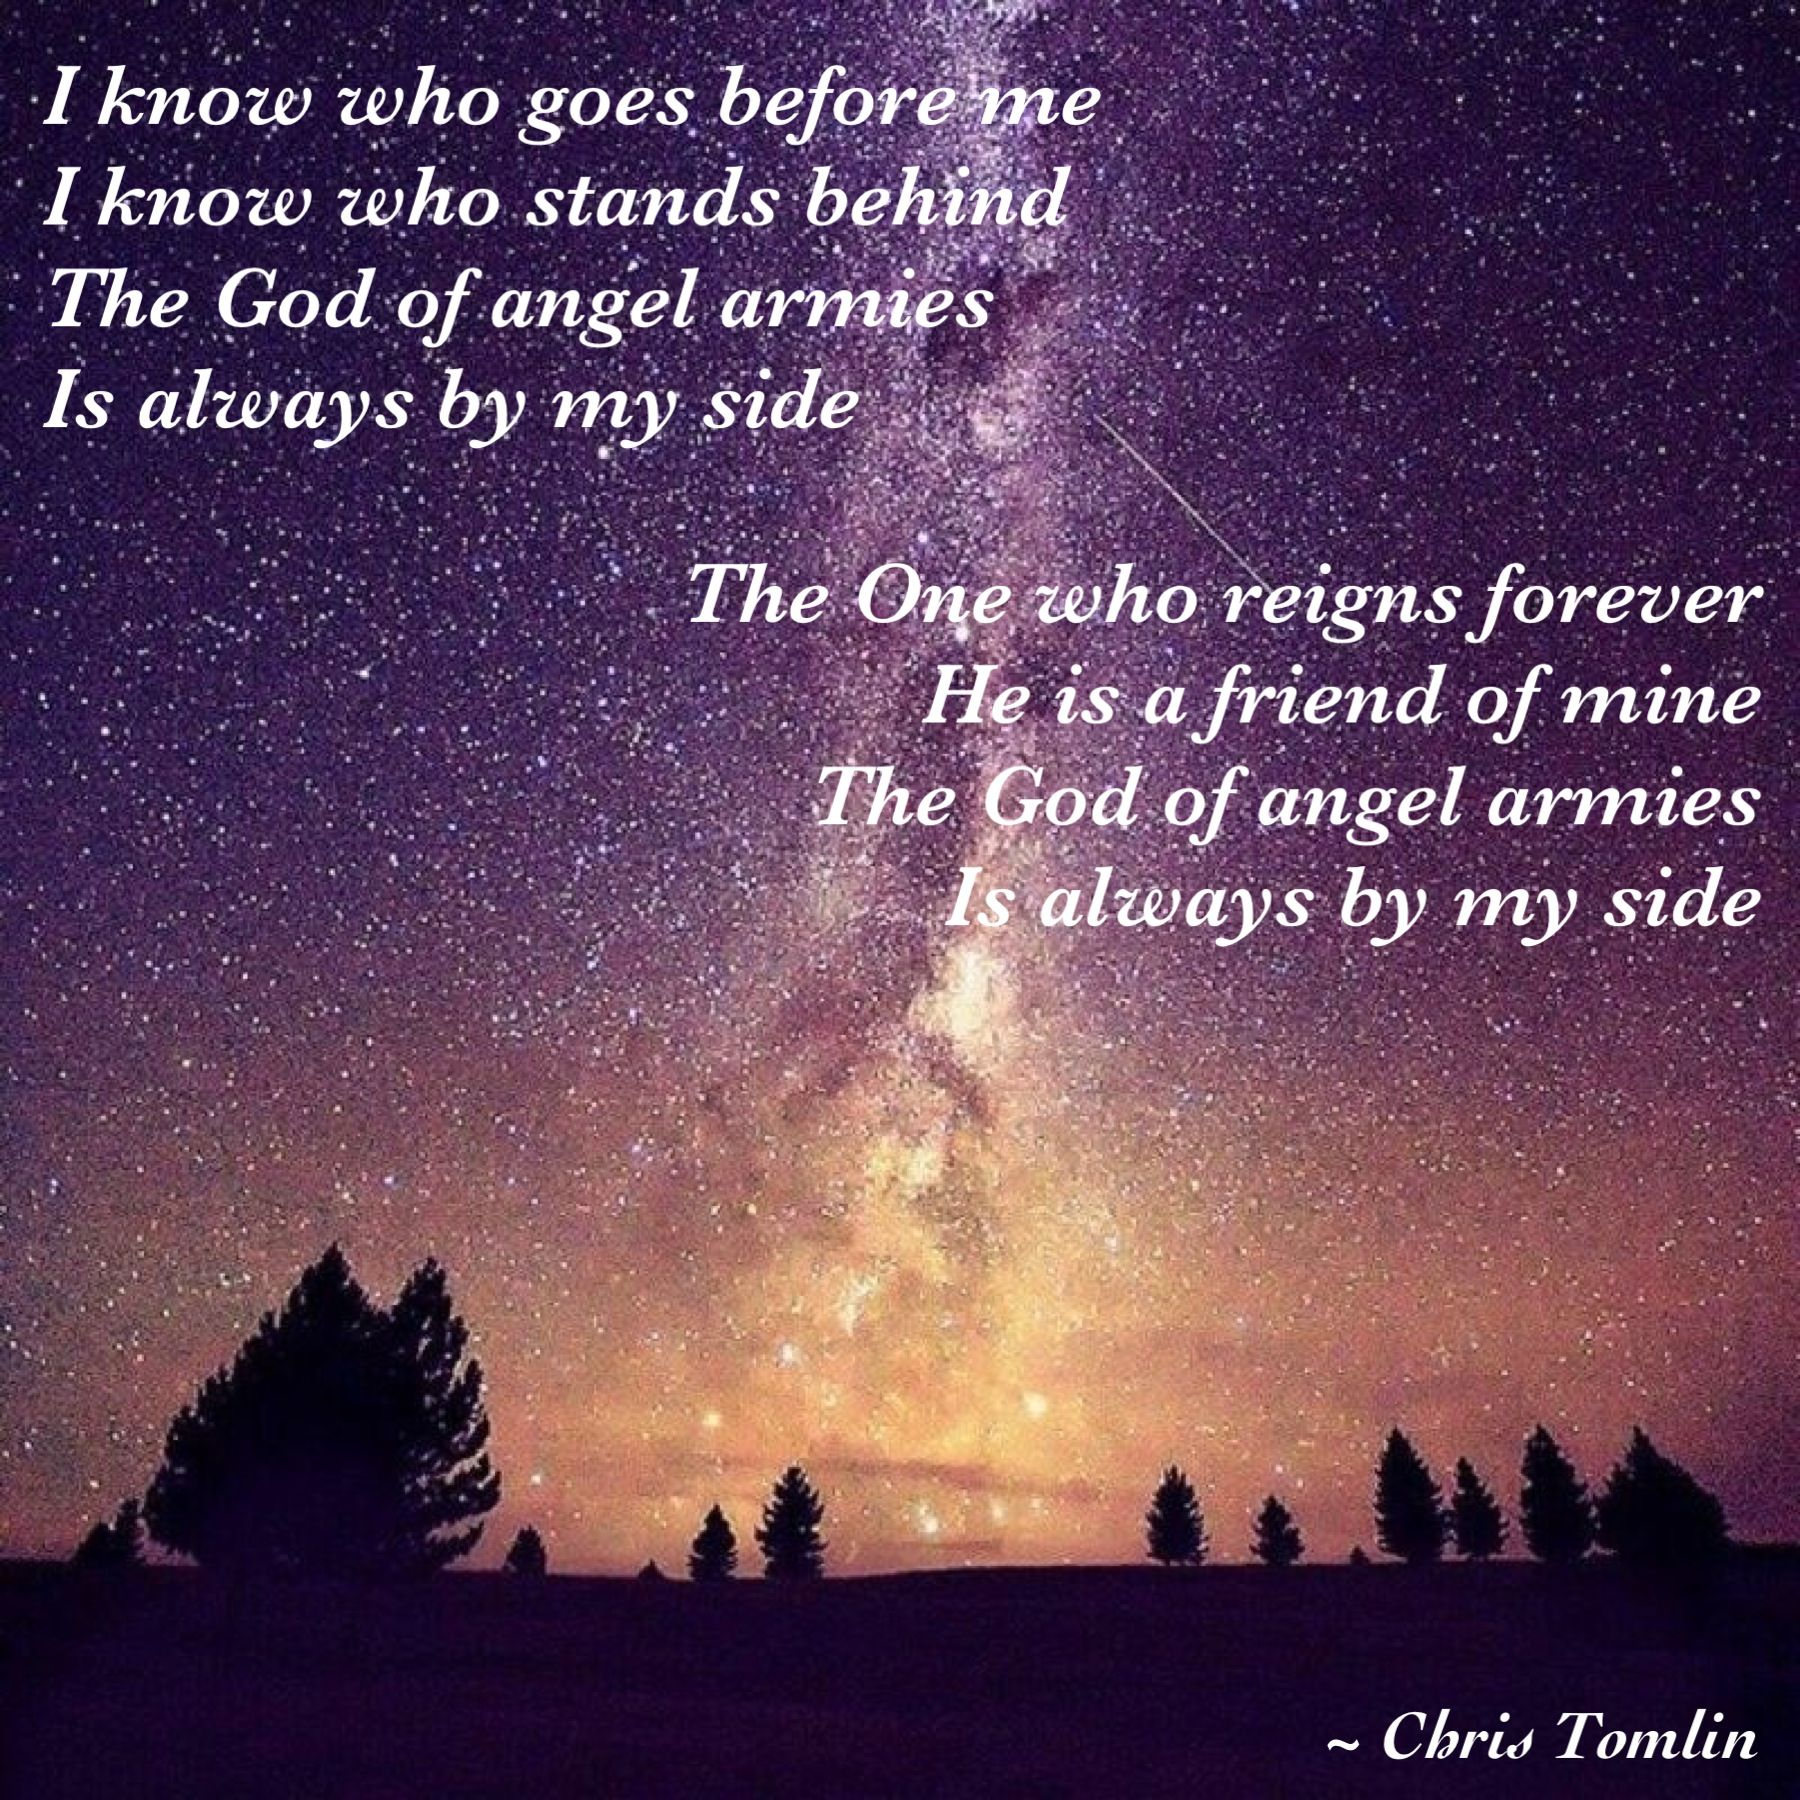 Whom Shall I Fear By Chris Tomlin Simply Beautiful Beautiful Quotes God Of Angel Armies Meaning Of Love